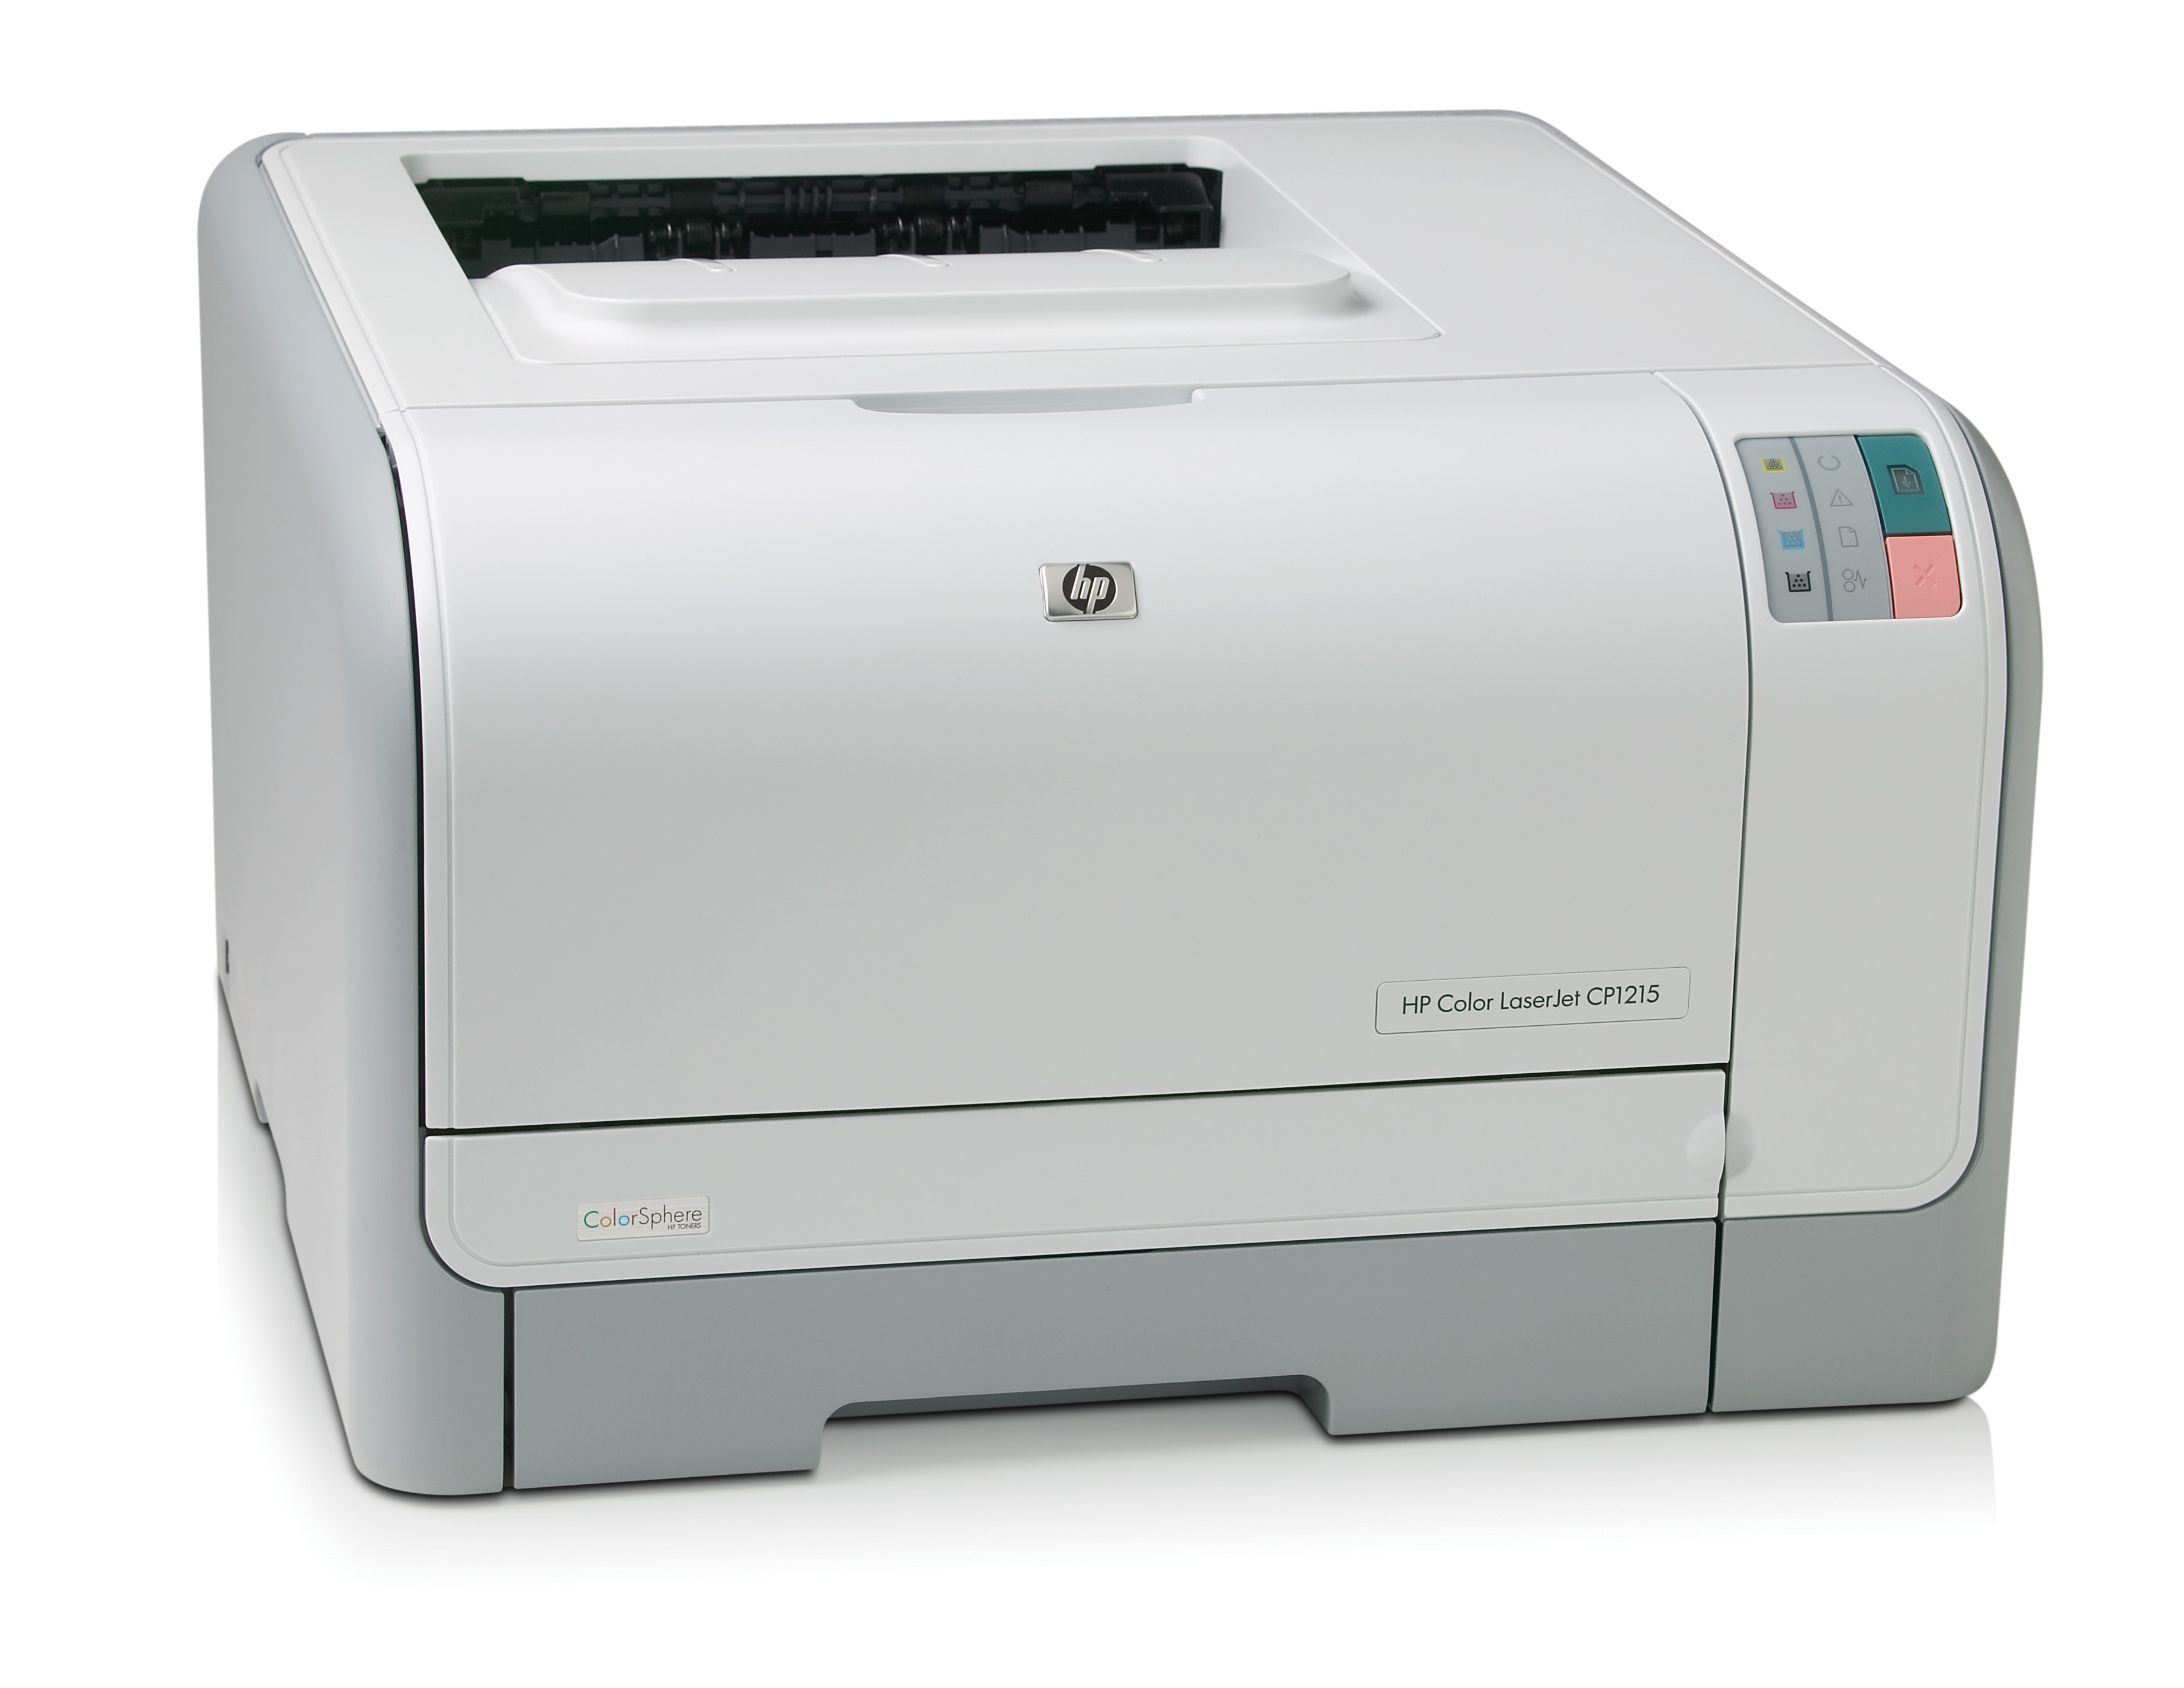 Принтер HP Color LaserJet CP1215 Printer